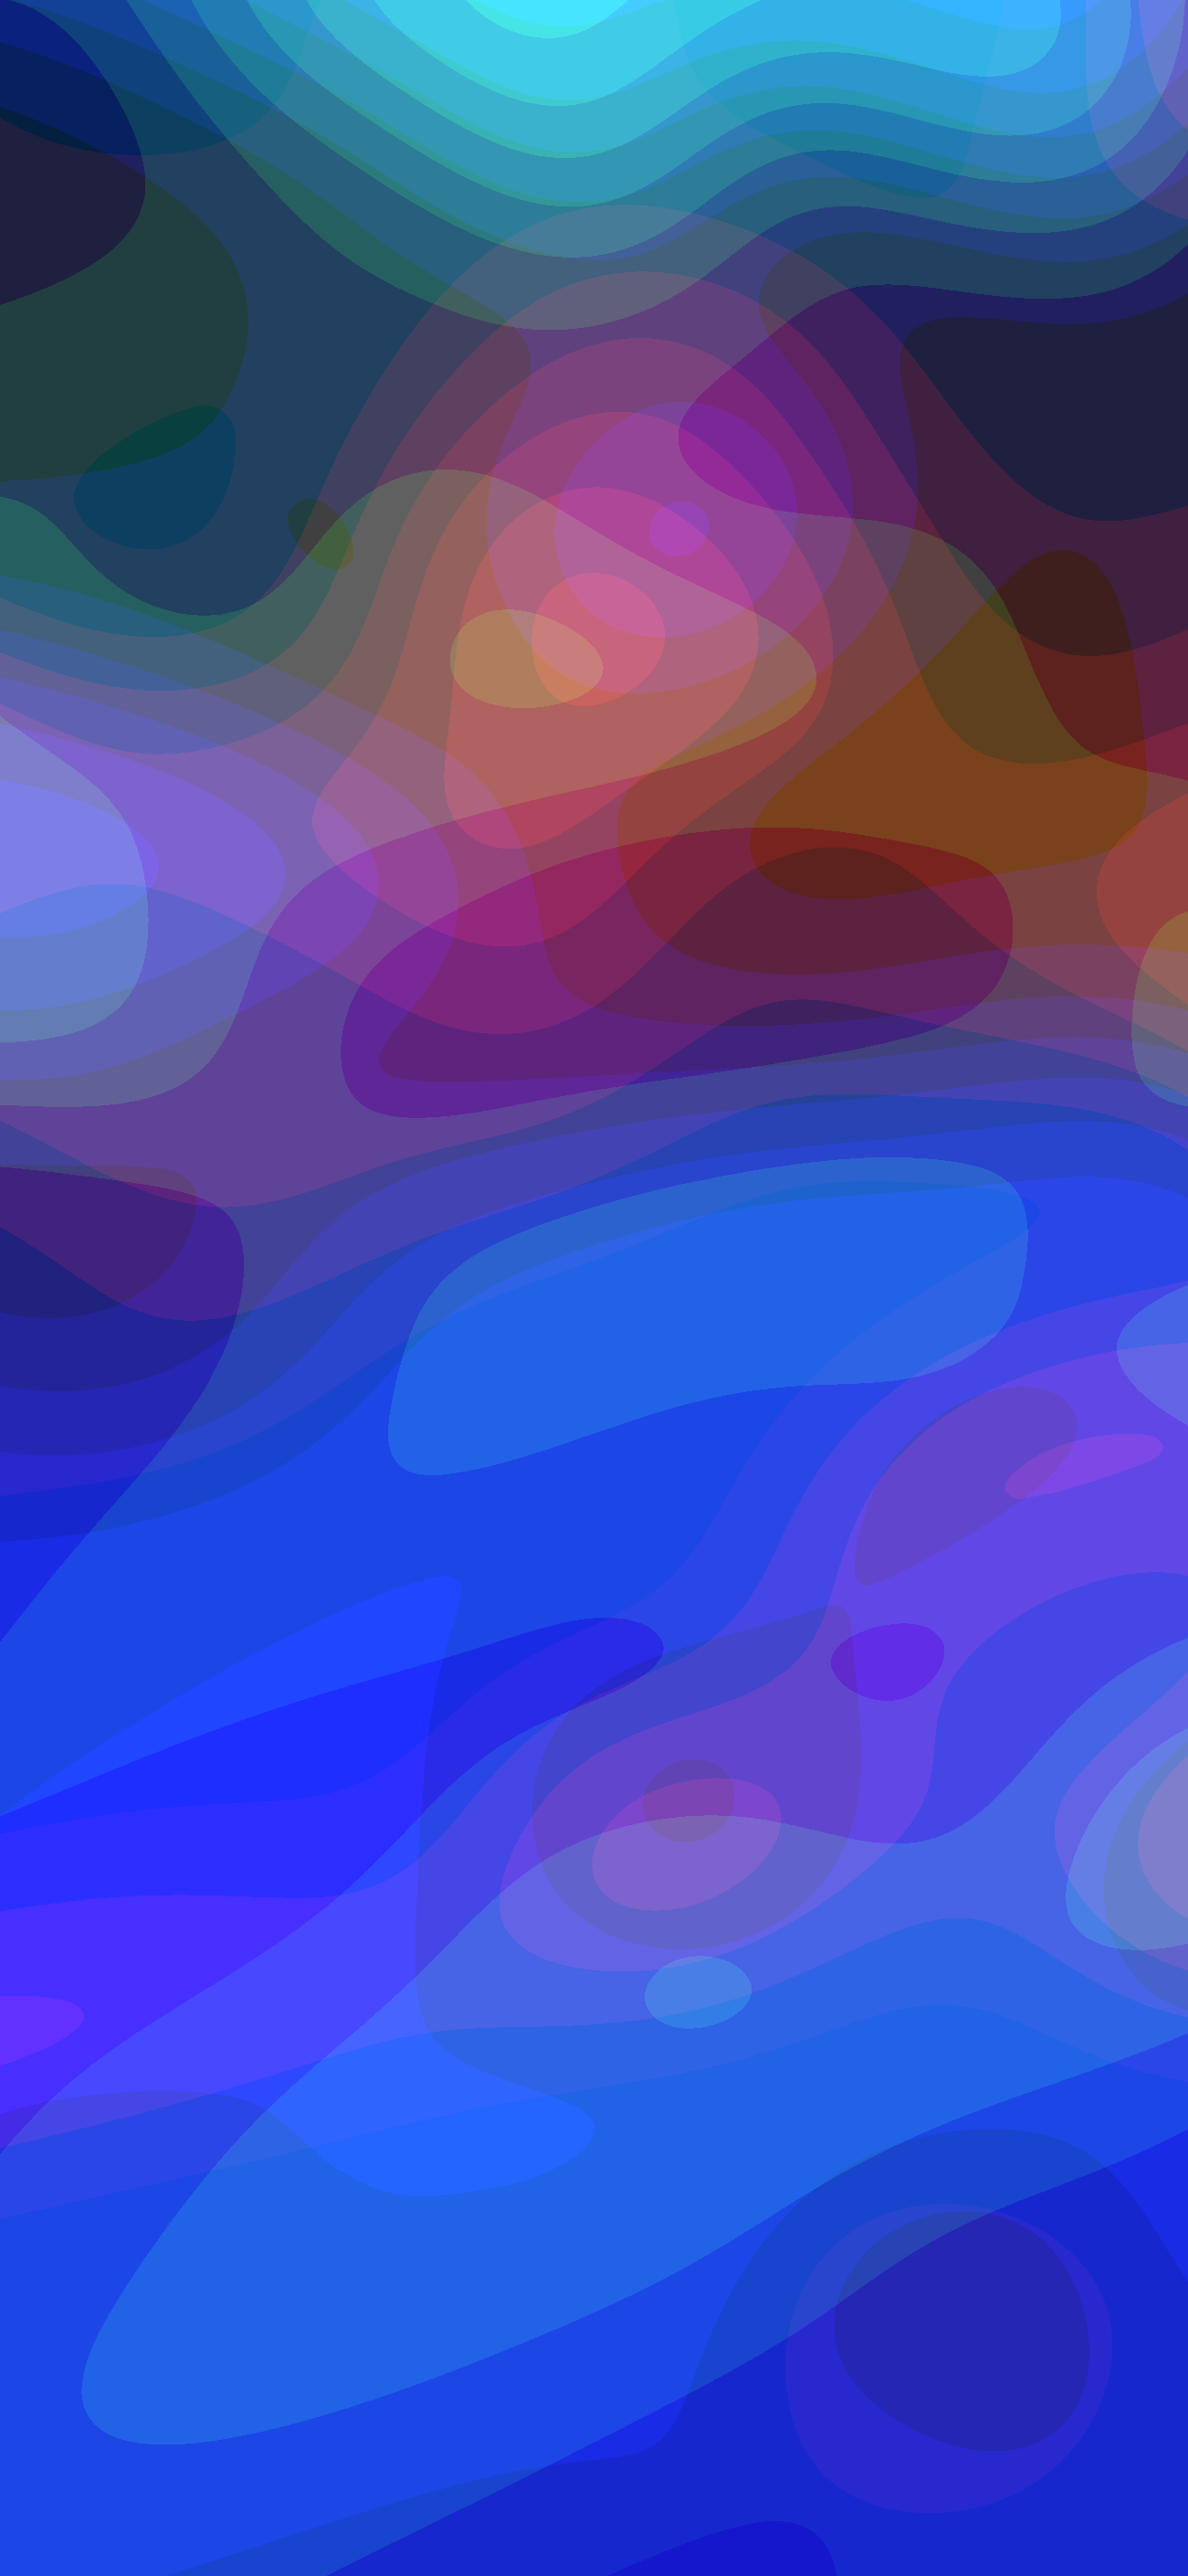 Abstract illusion art colorful blurred Mkbhd